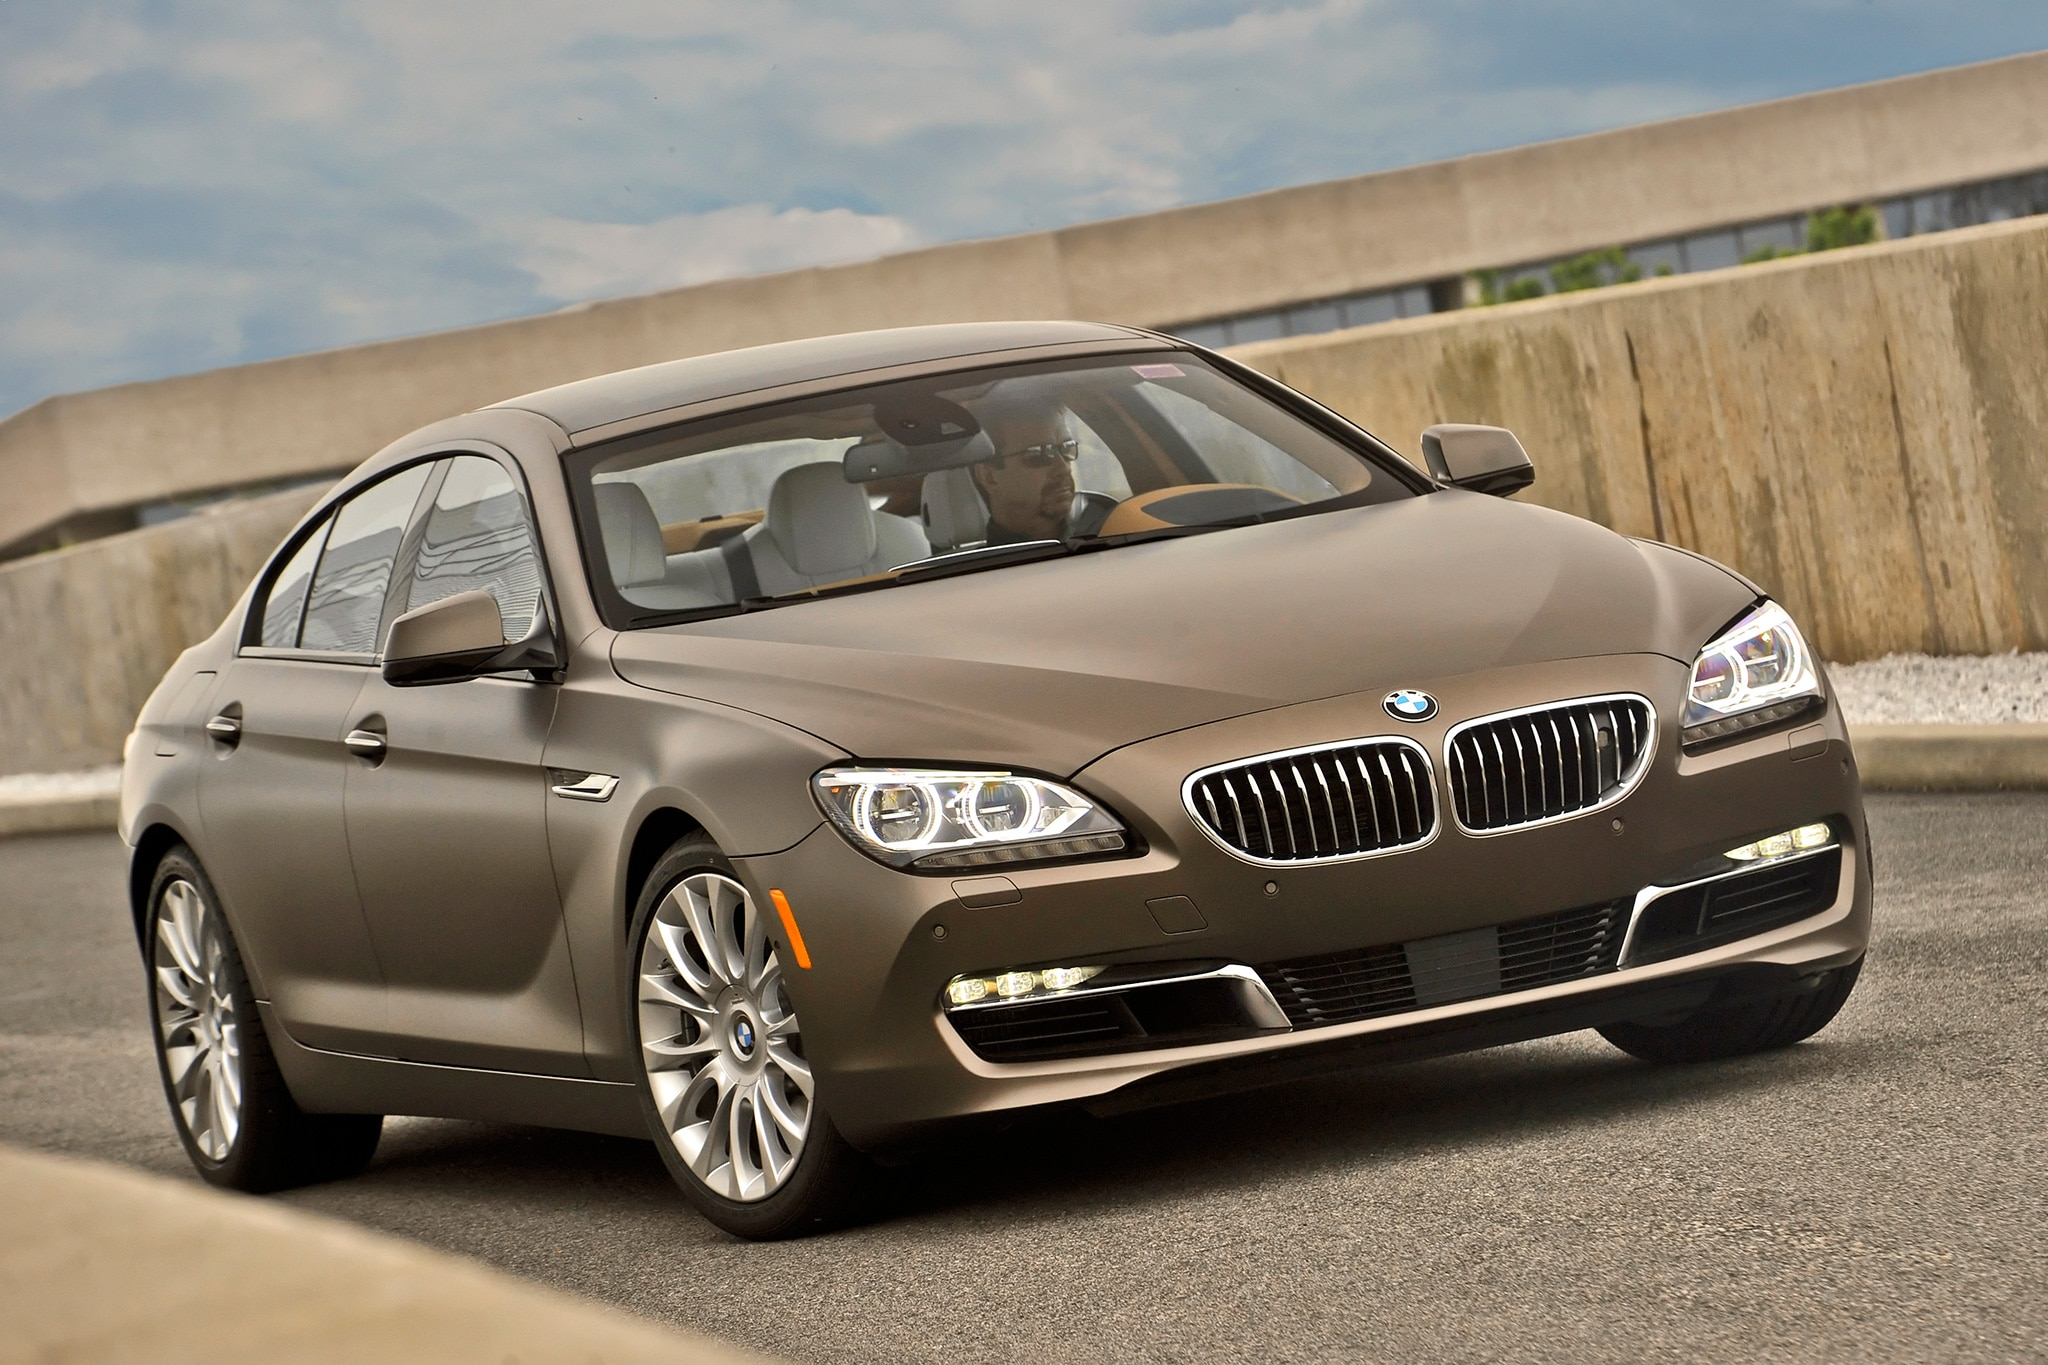 2014 bmw 6 series - photo #12